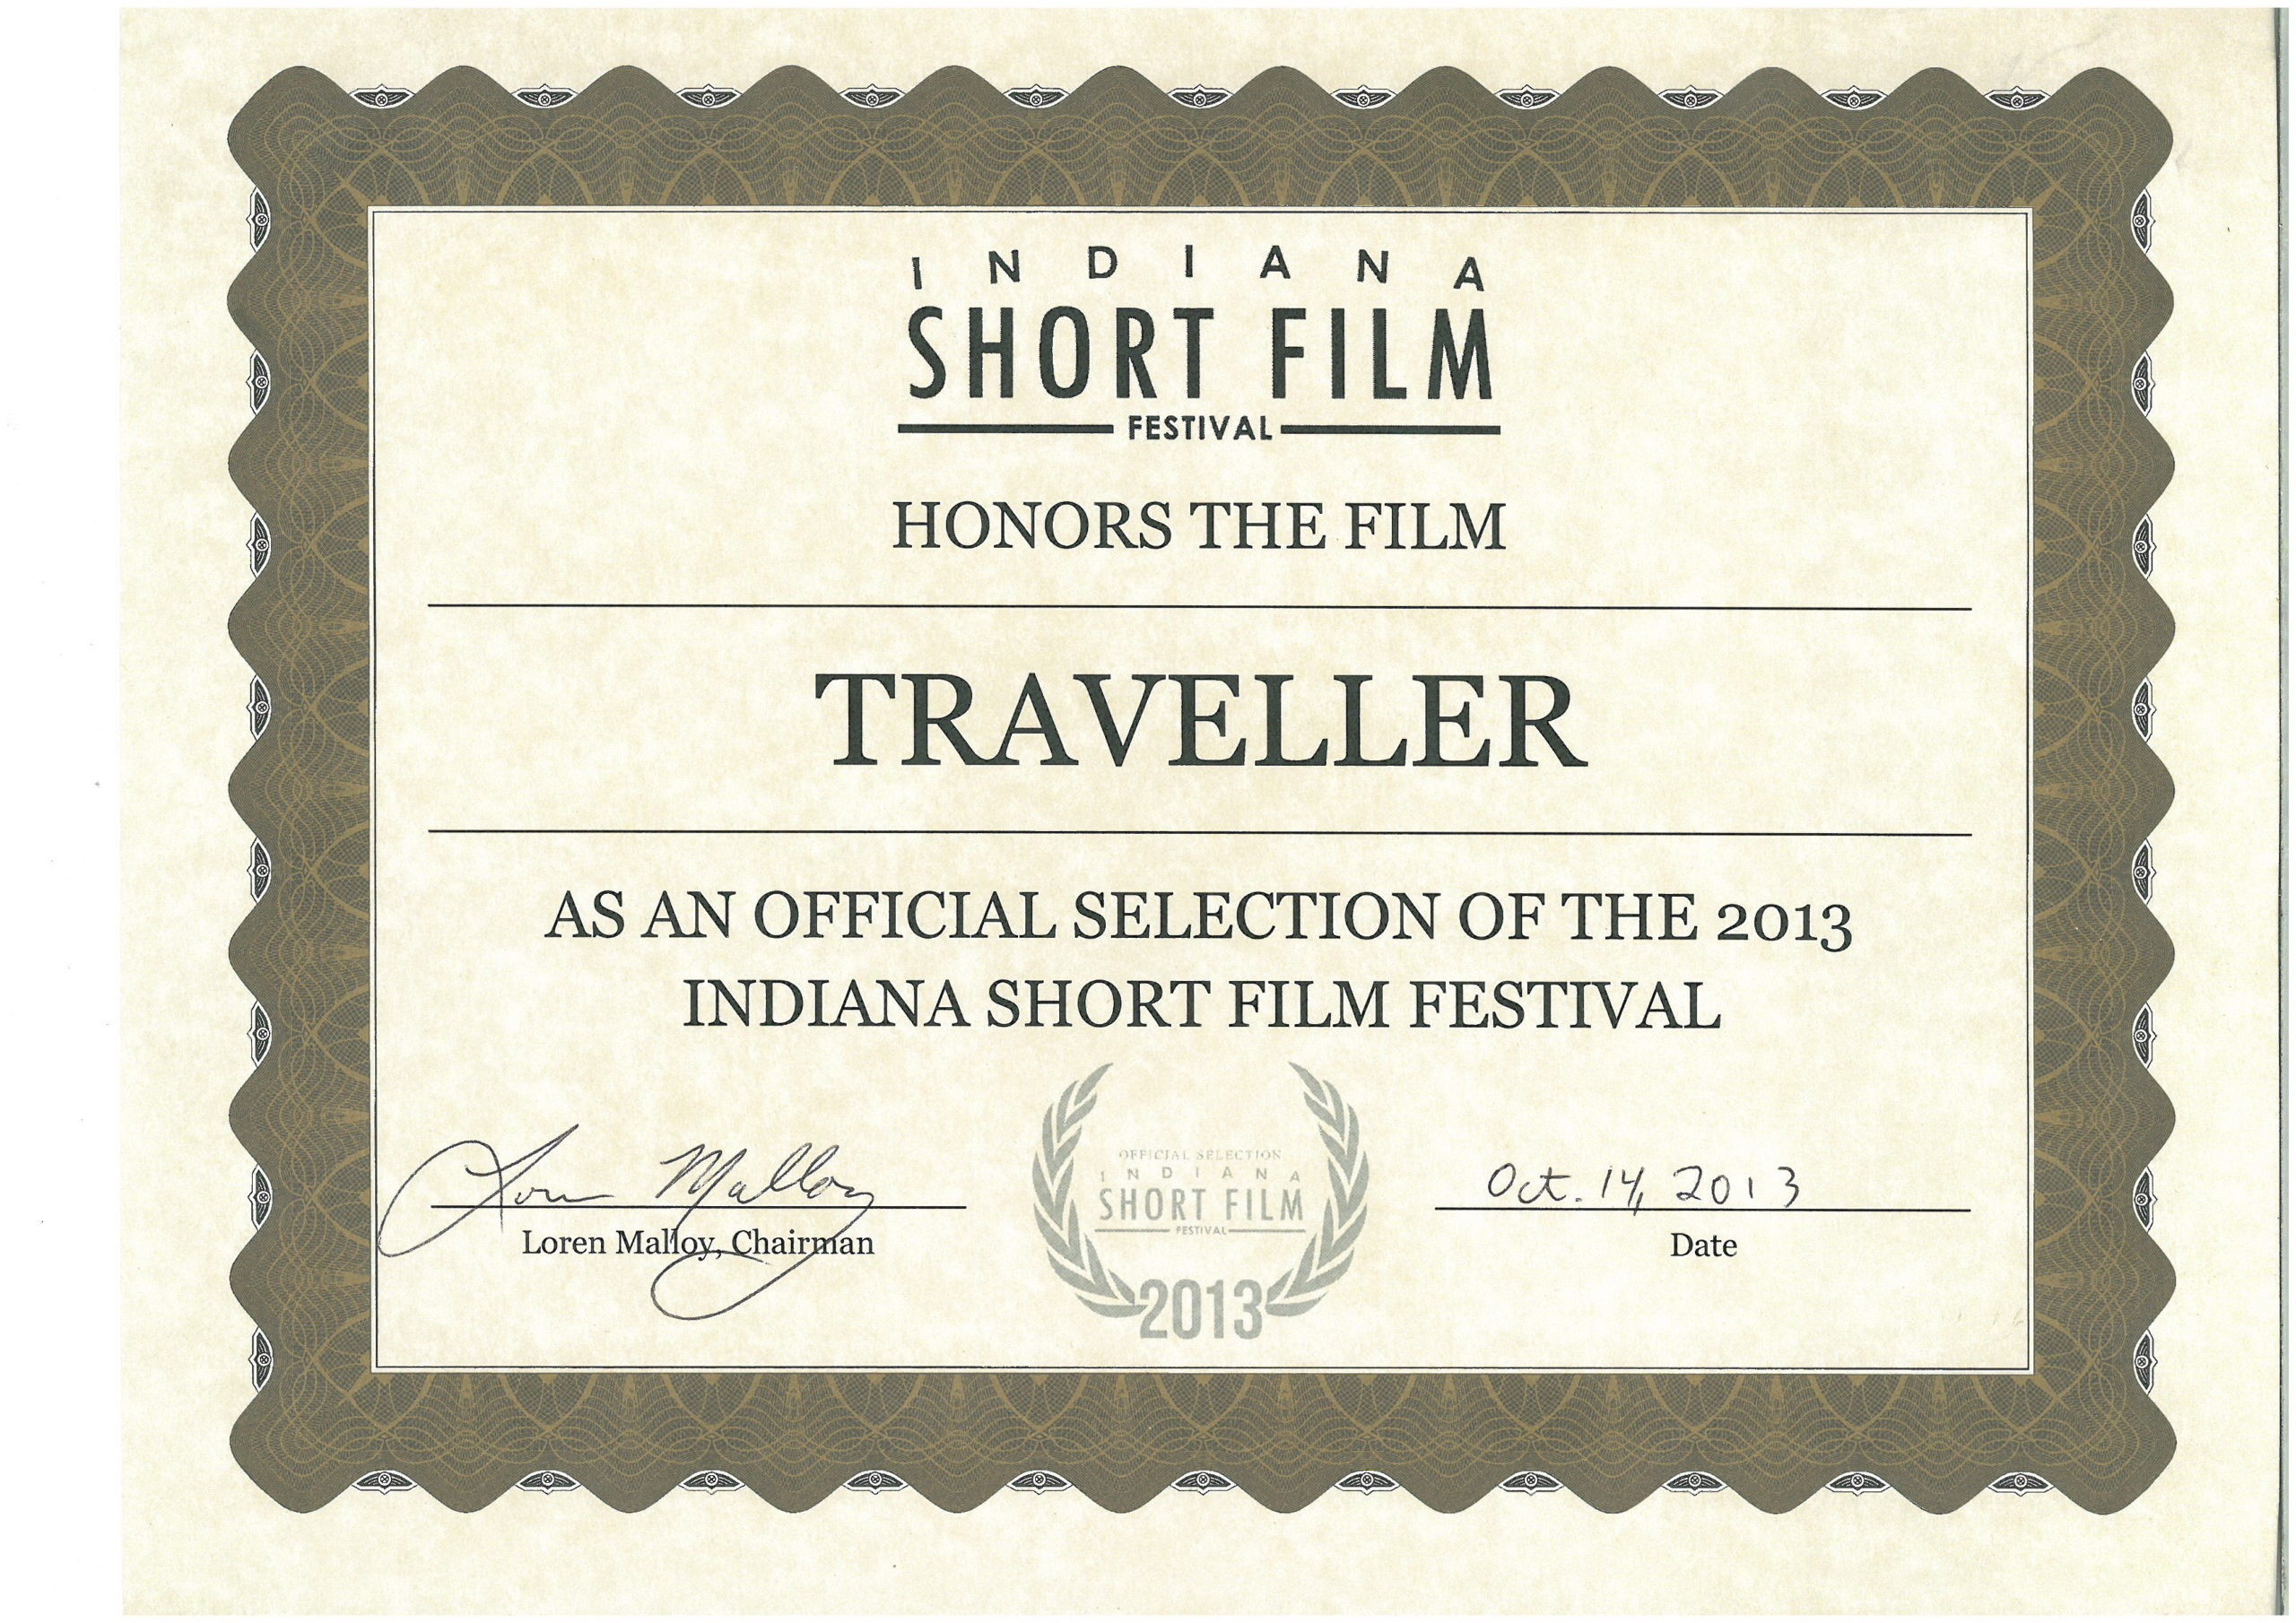 Indiana Short Film Festival